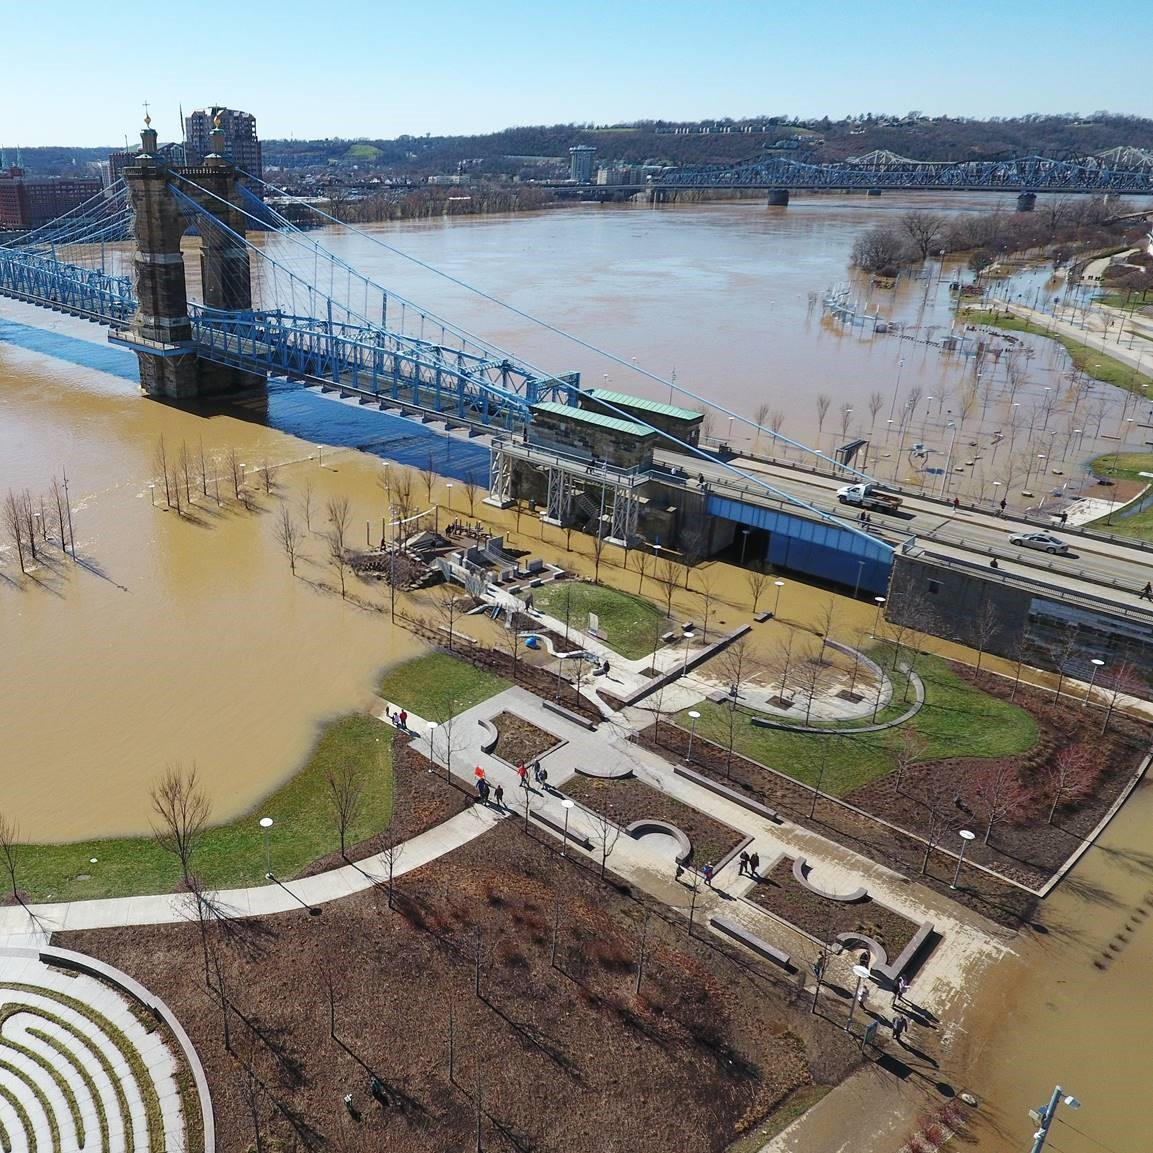 Smale Riverfront Park's resilient design helped after-flood cleanup